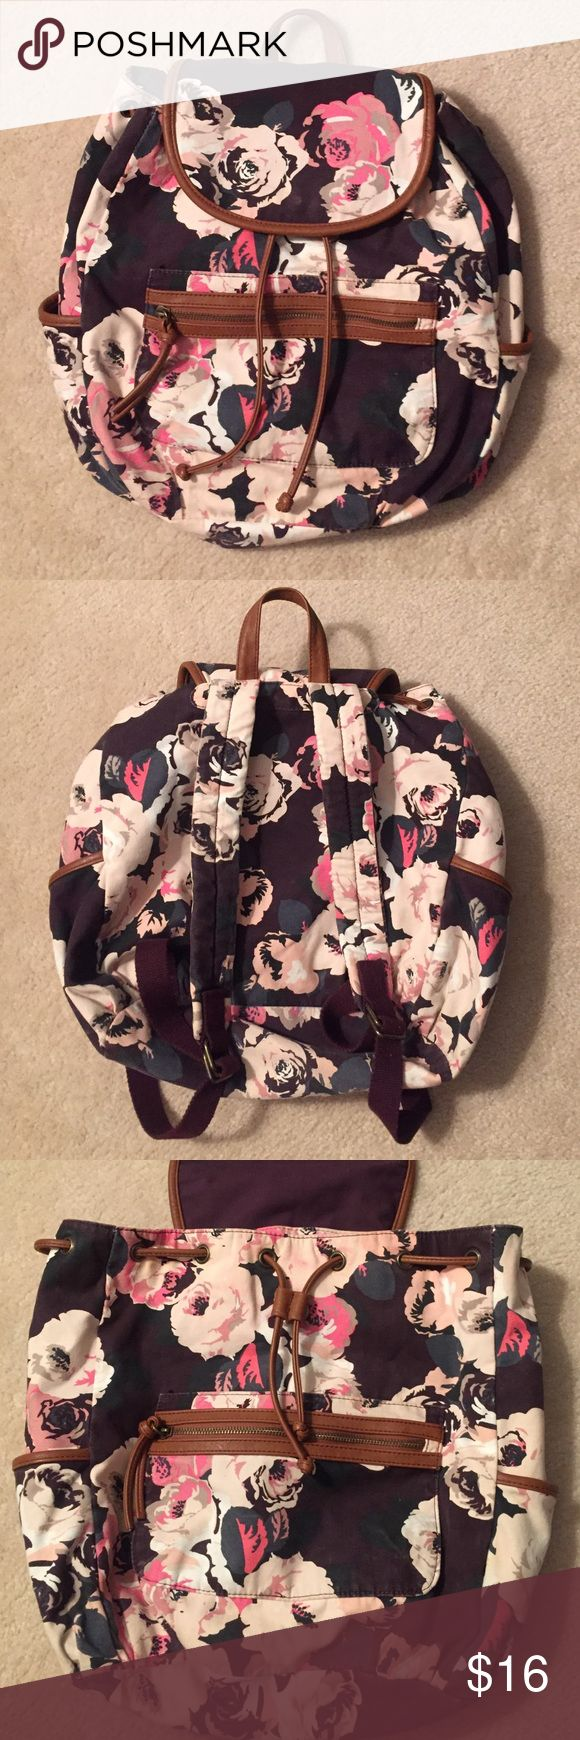 American Eagle✨Roses Canvas Backpack Beautiful pink and cream roses on brownish burgundy background. Two outer pockets on each side and one zipper compartment in front. Clean inside. Good condition. See pic 4 for slight discoloration on inside flap. American Eagle Outfitters Bags Backpacks